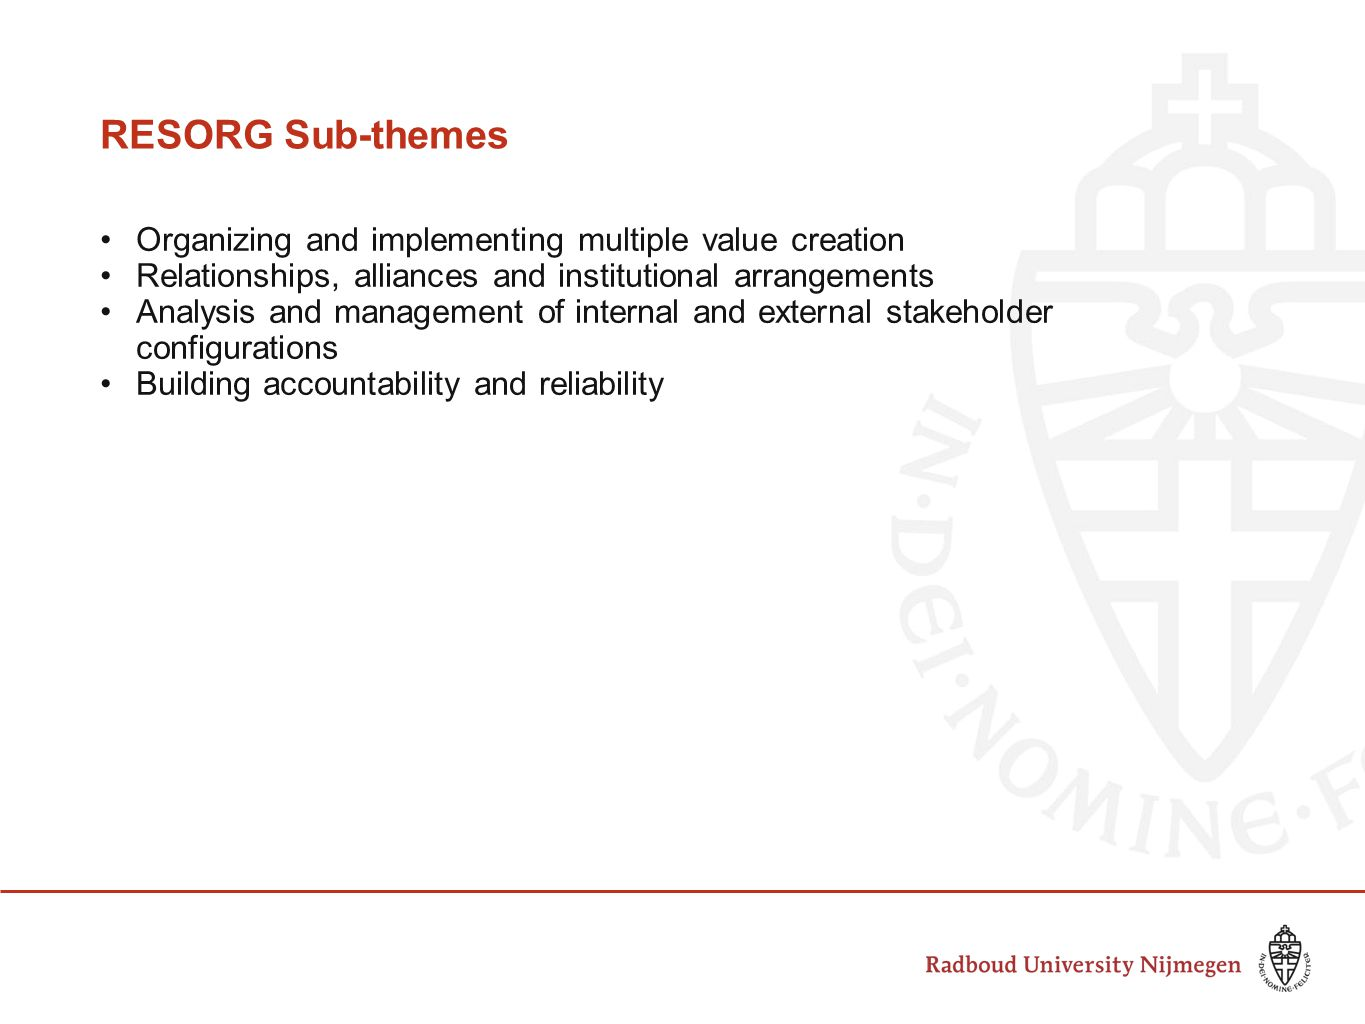 RESORG Sub-themes Organizing and implementing multiple value creation Relationships, alliances and institutional arrangements Analysis and management of internal and external stakeholder configurations Building accountability and reliability